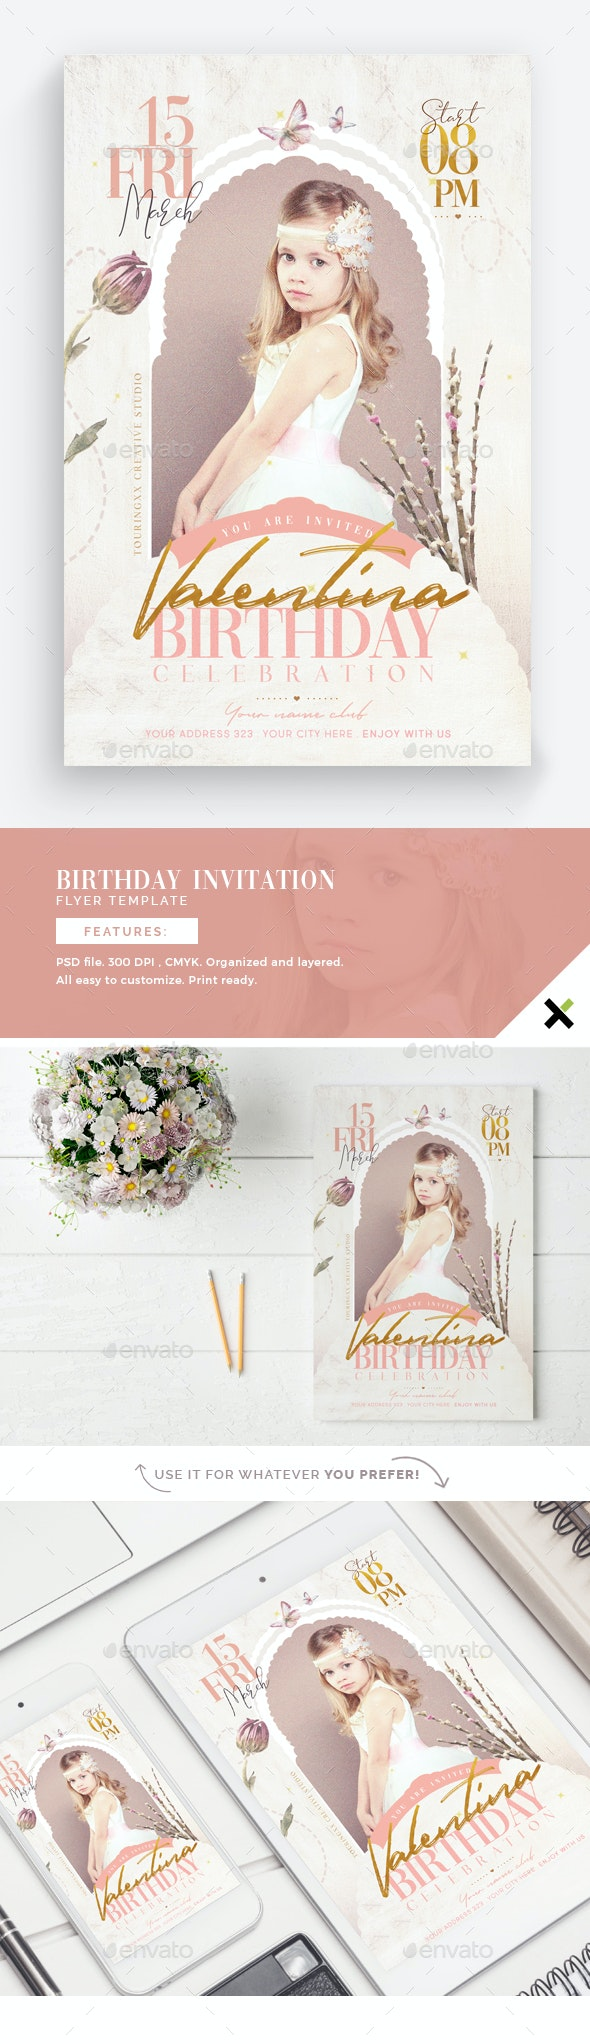 Birthday Invitation Flyer Template - Flyers Print Templates